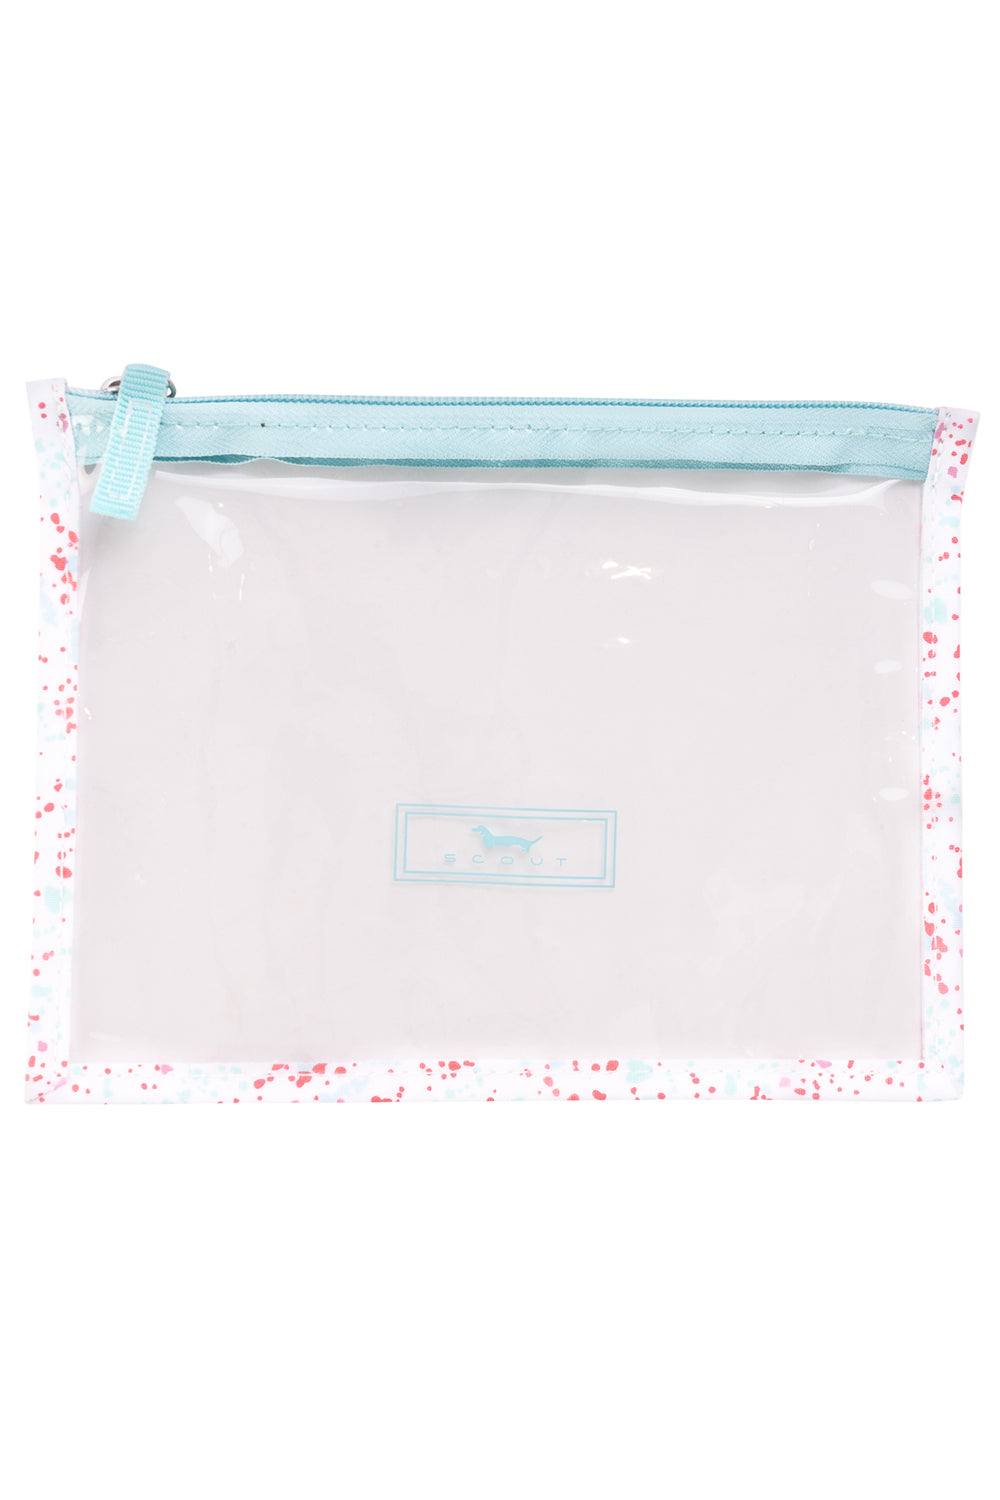 "Sheer Madness Clear Pouch - ""Splatti Labelle"" SS20"